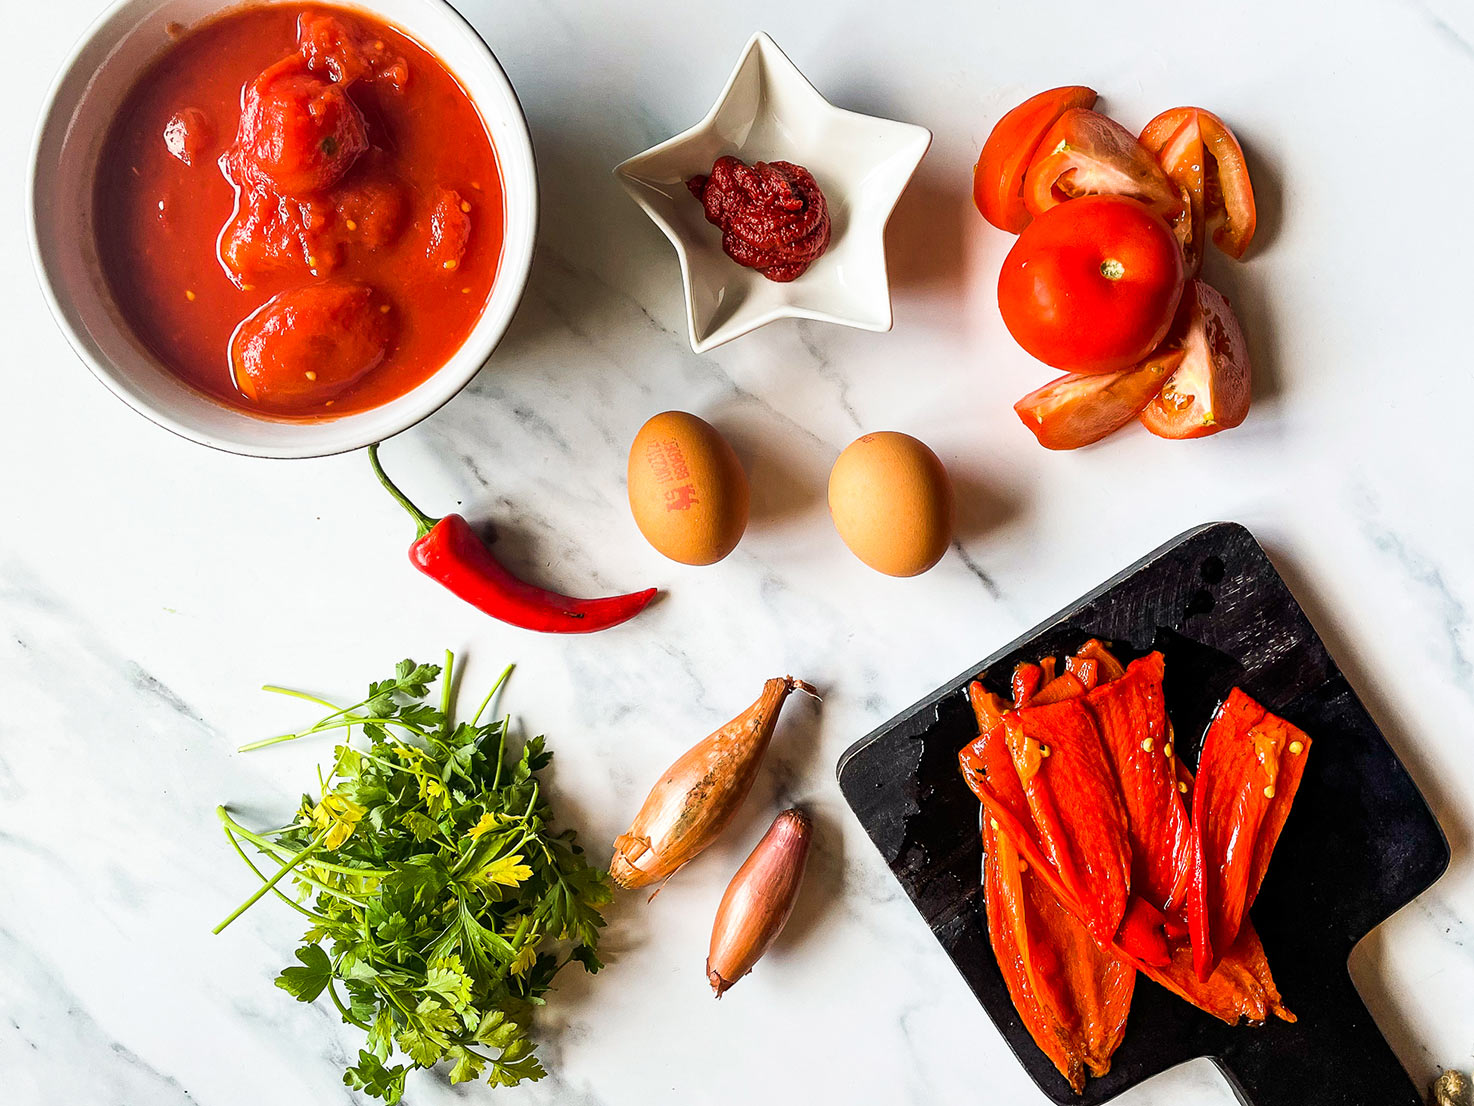 The ingredients are on the table - red onion, tomatoes, tomato passata, eggs and red chili #pepper #bread | hurrythefoodup.com